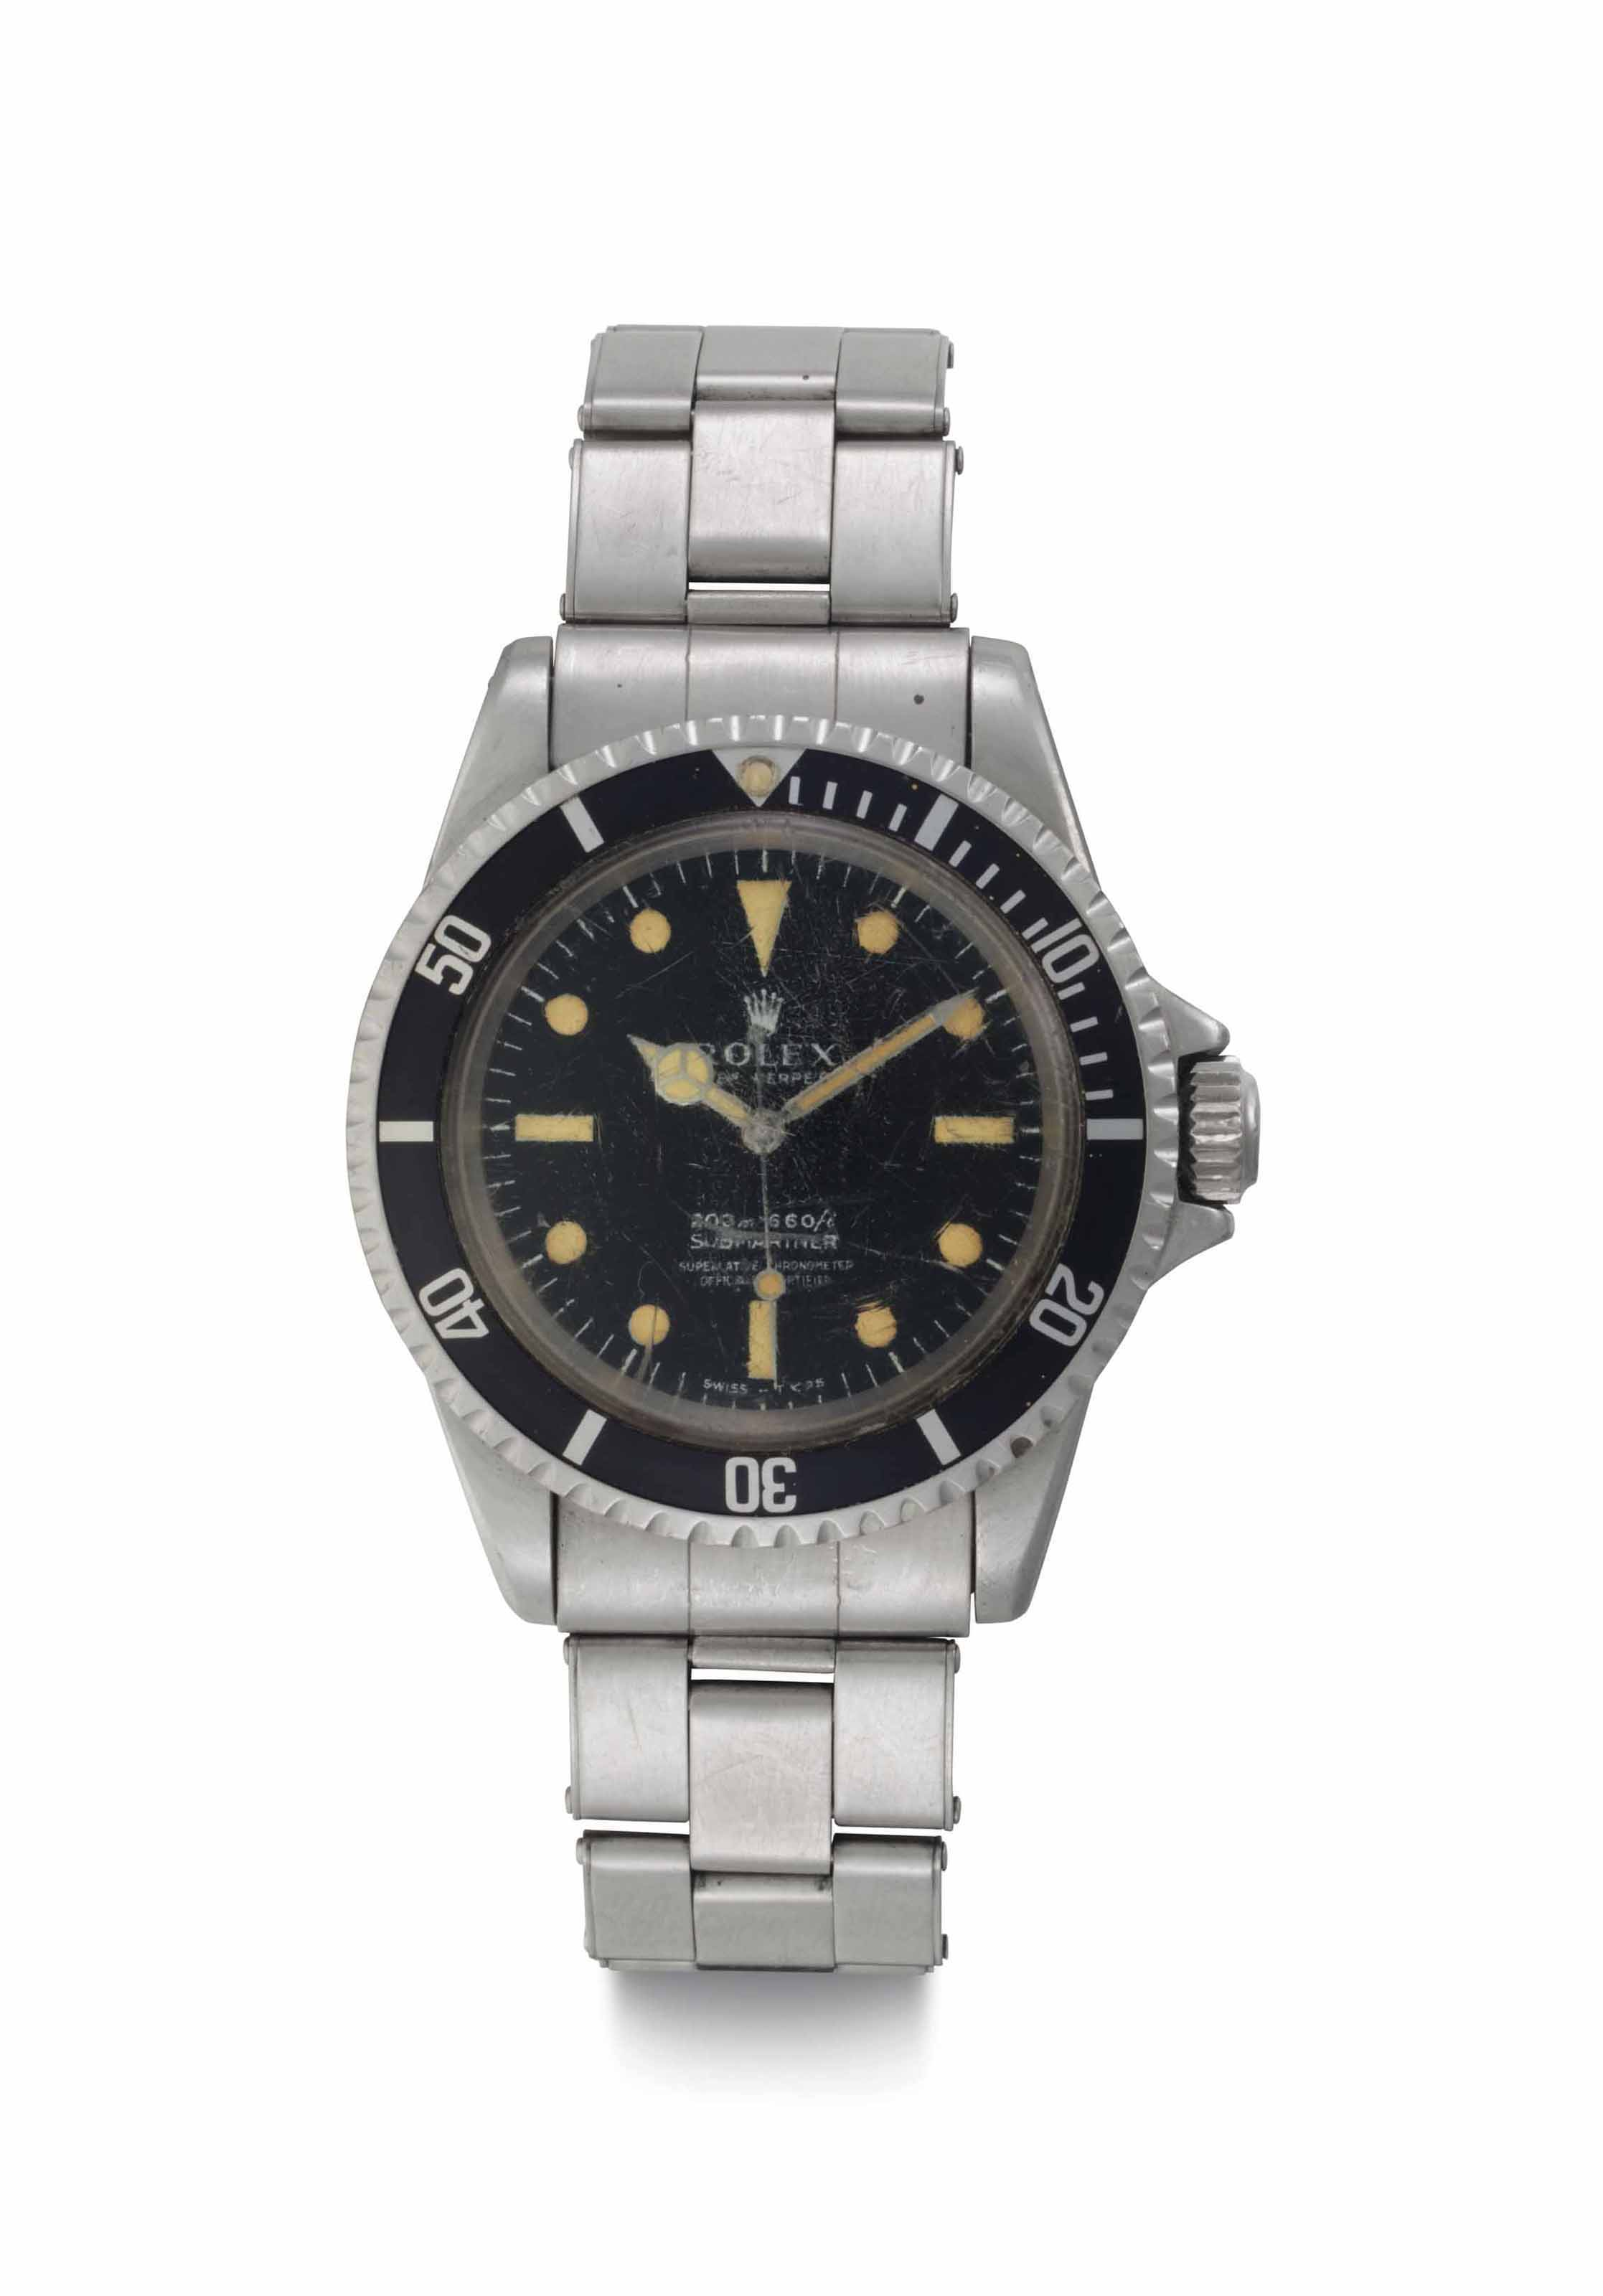 Rolex. A Fine Stainless Steel Automatic Wristwatch with Center Seconds and Bracelet, Worn by Scientist John VanDerwalker